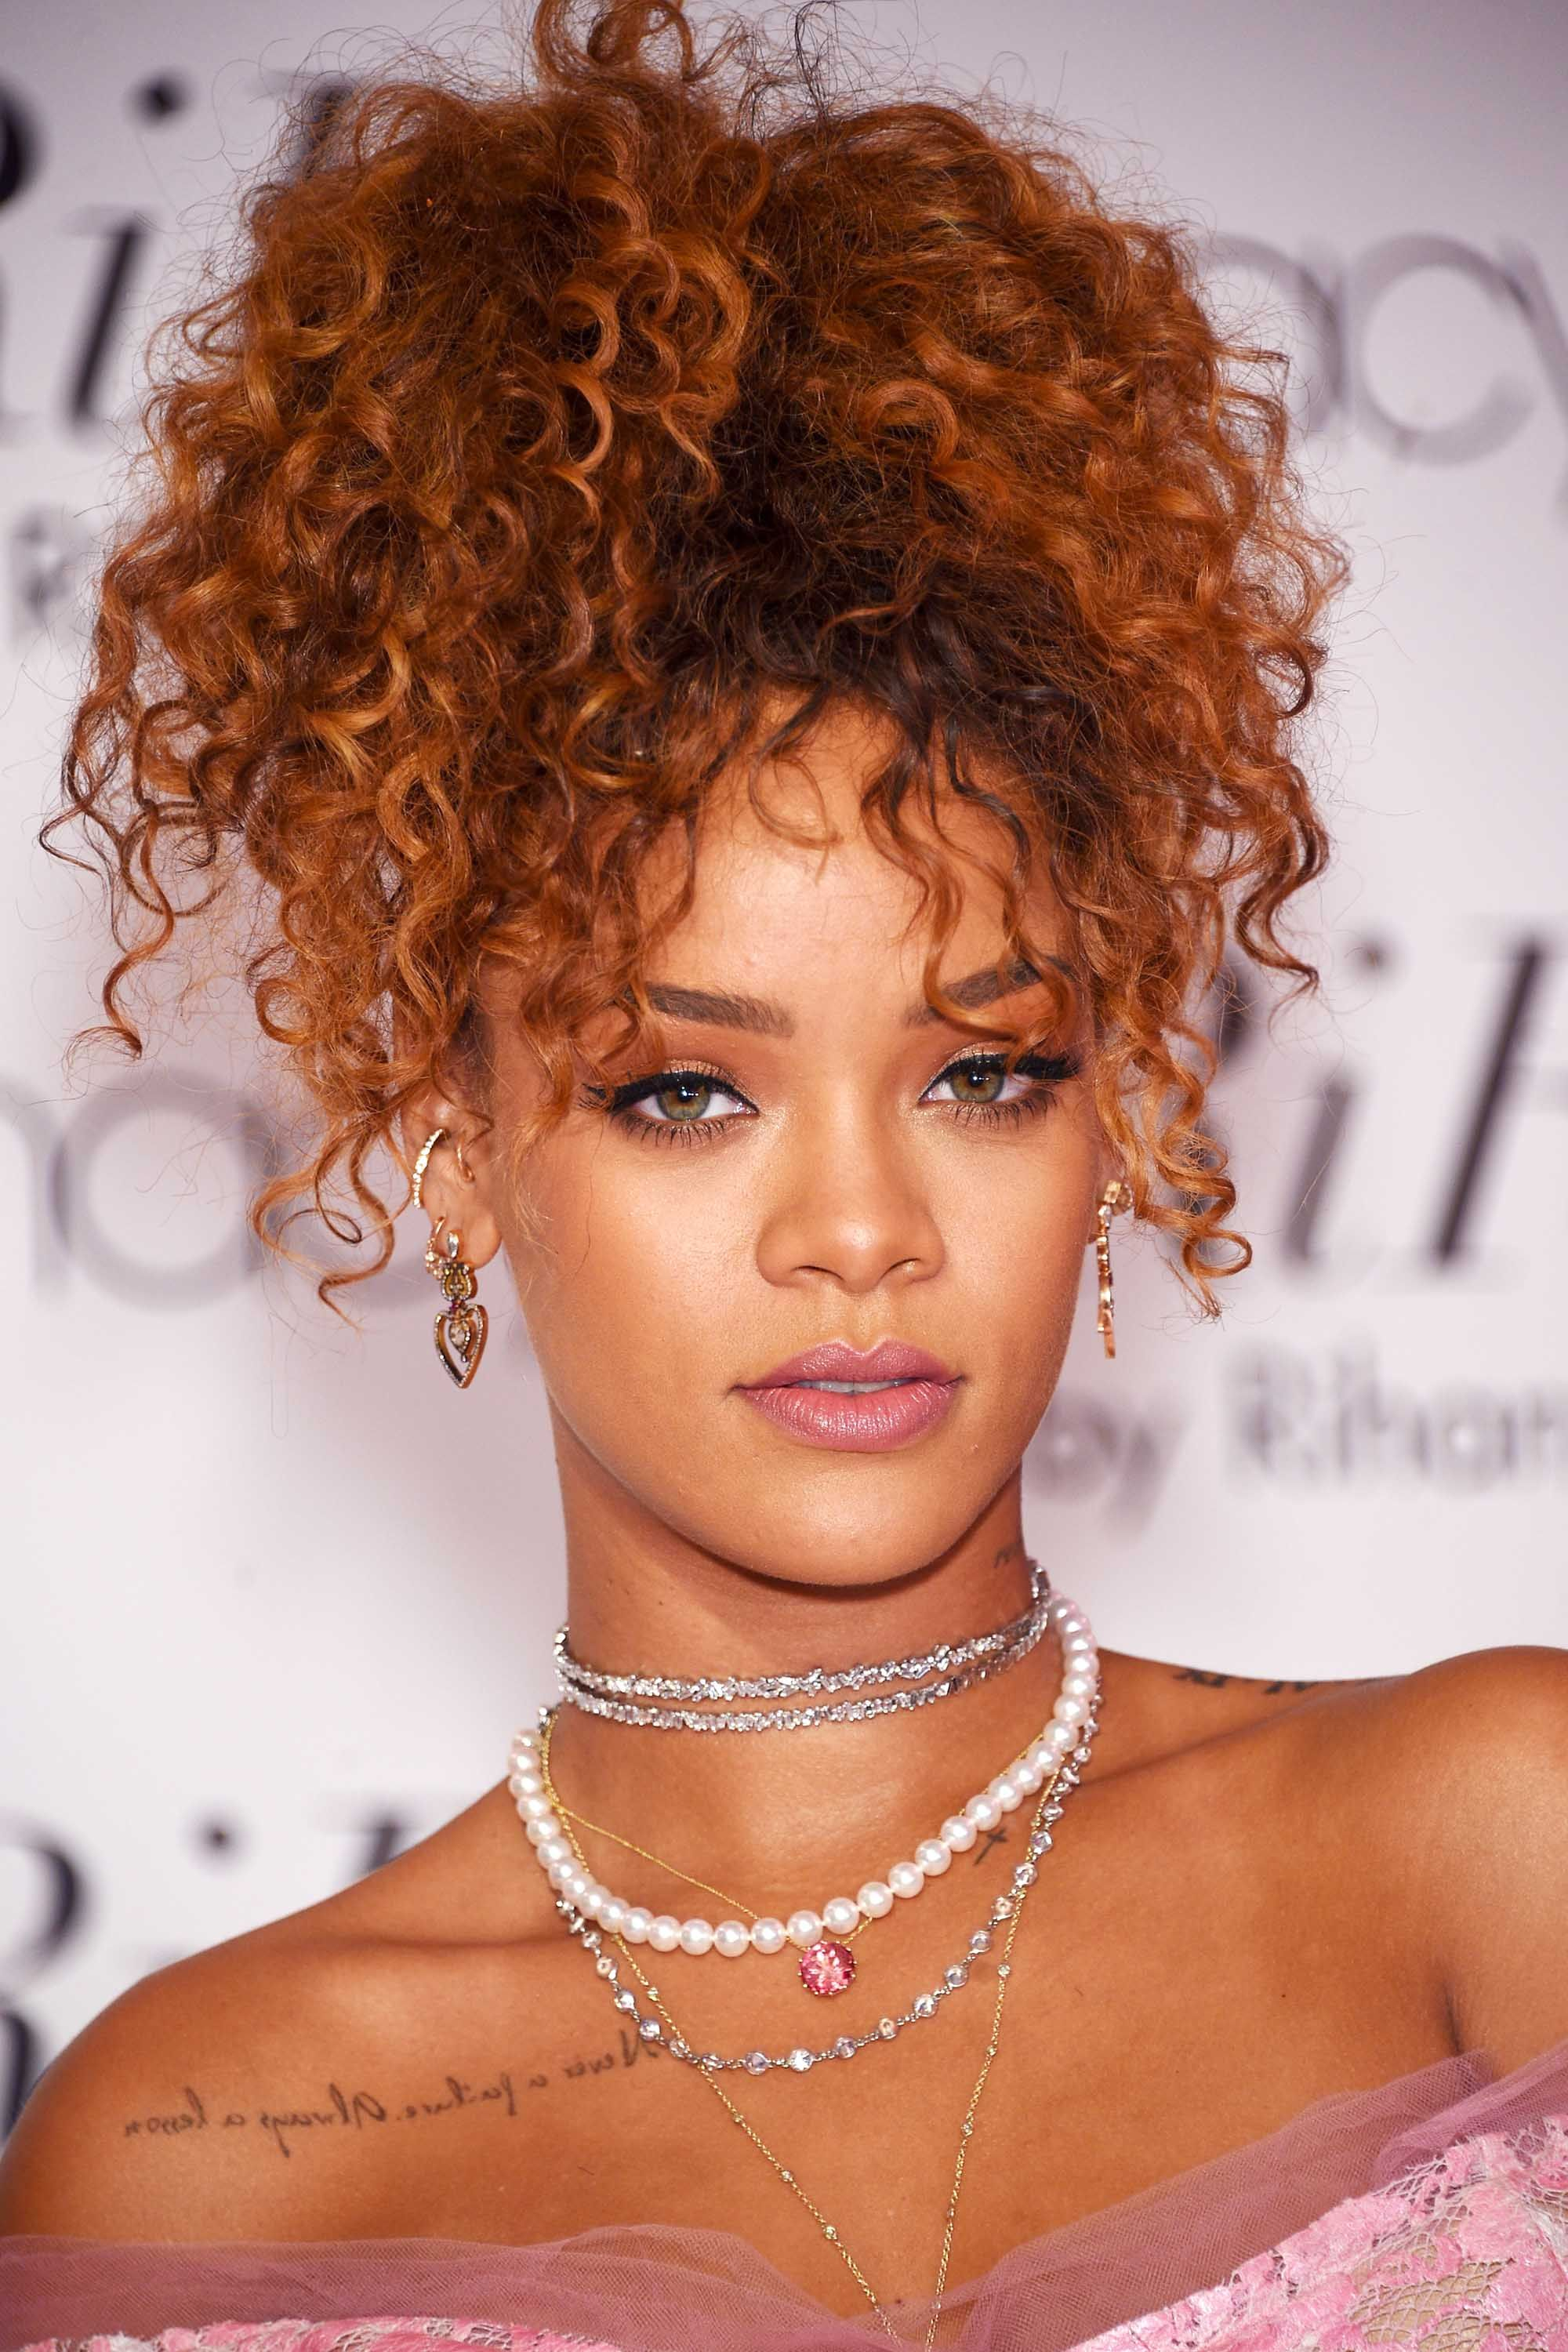 50 Best Rihanna Hairstyles - Our Favorite Rihanna Hair Looks of All Time